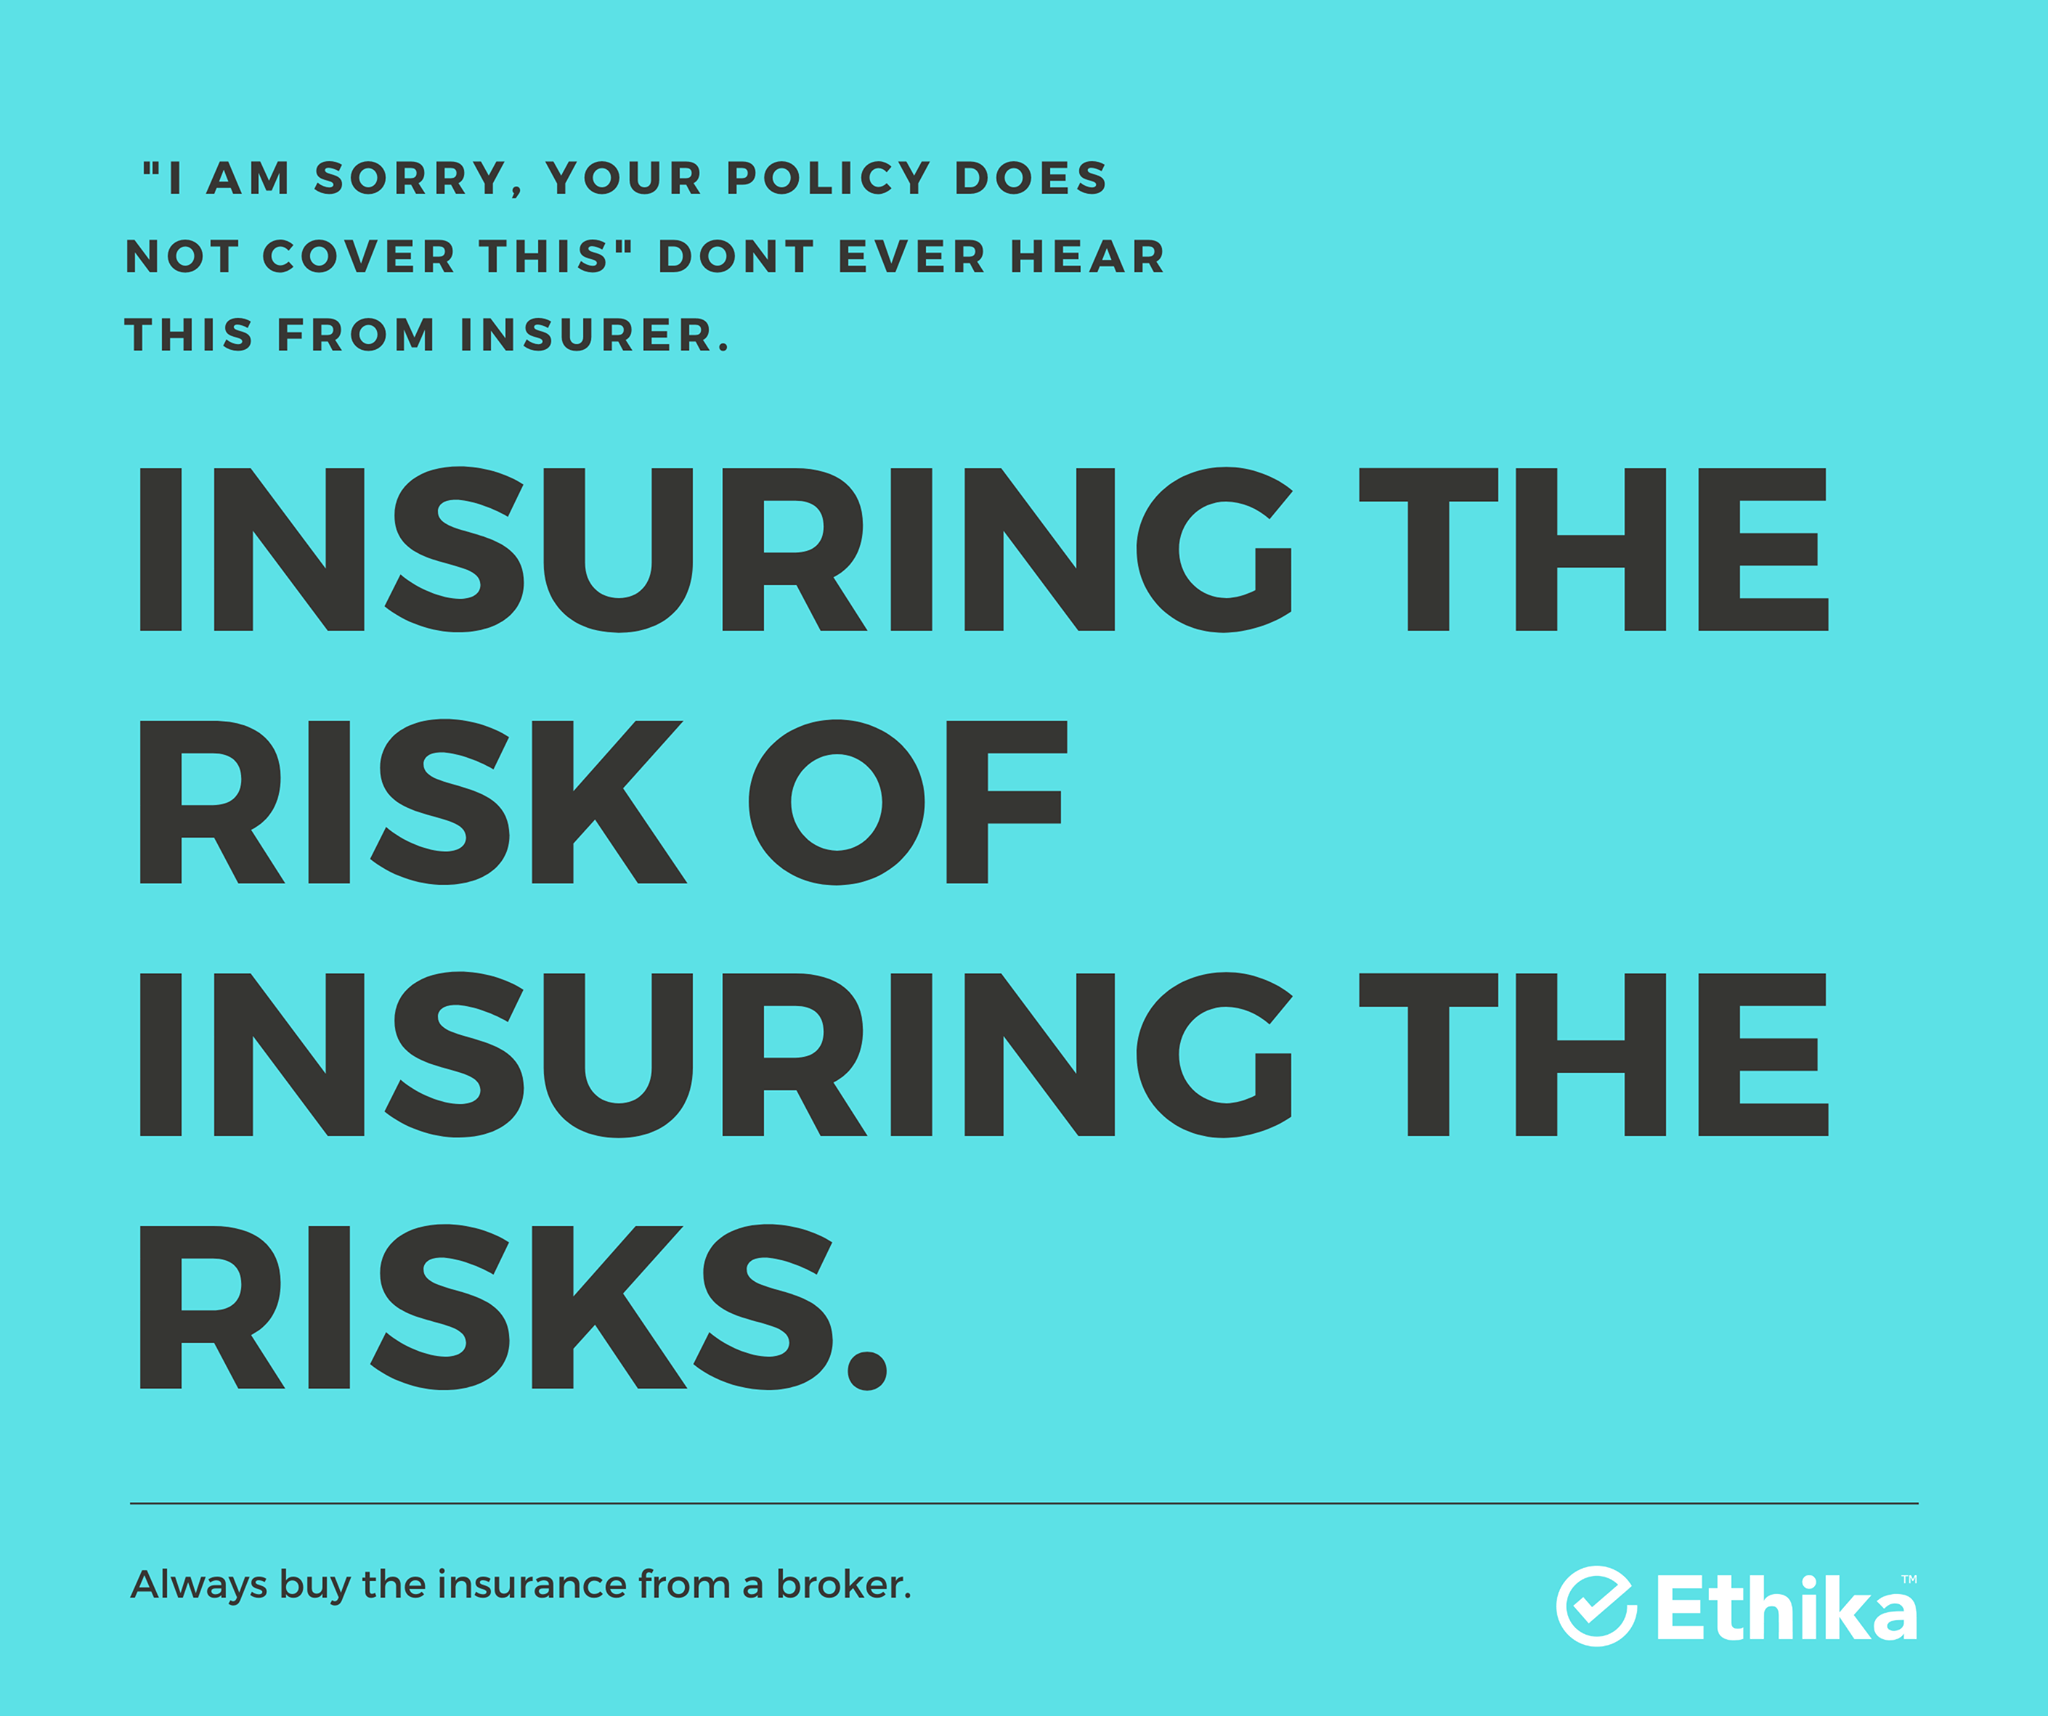 vector image of Insuring the risk